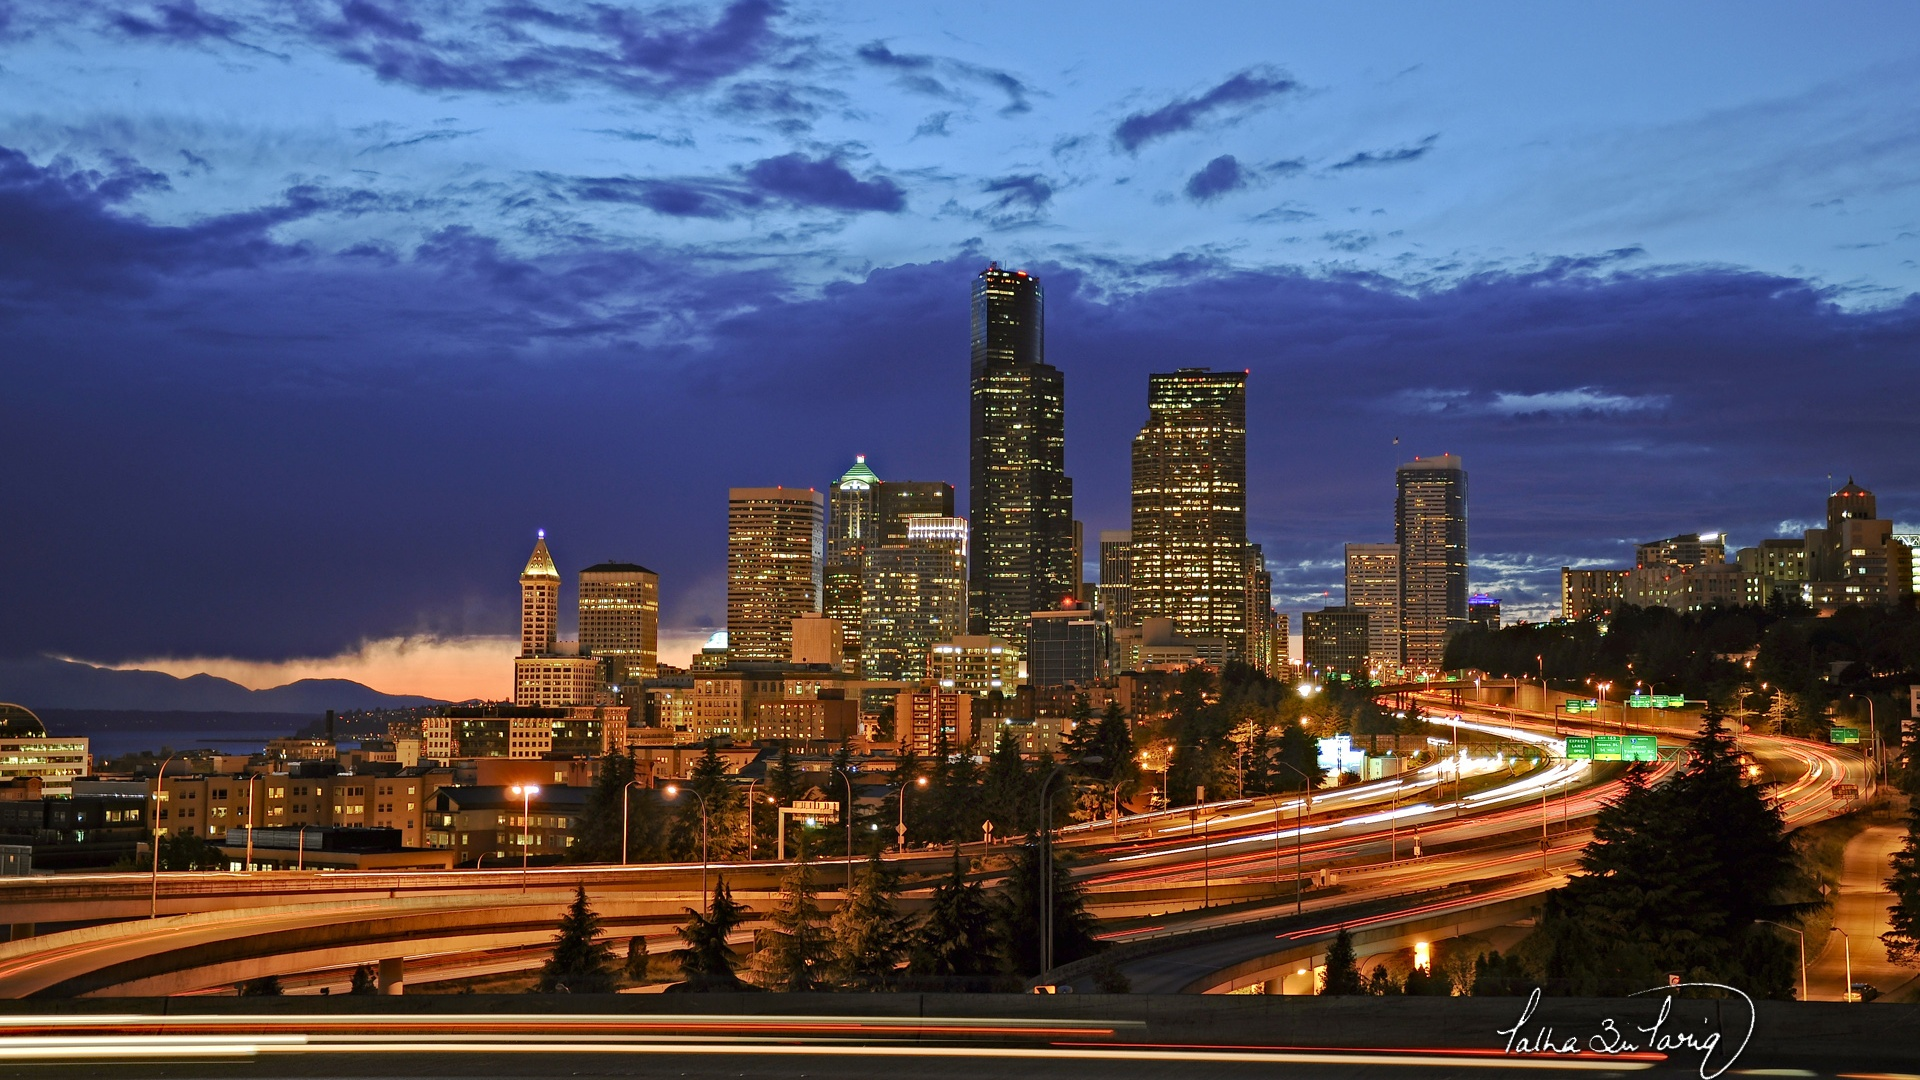 Wallpaper Seattle City Night Lights 1920x1200 Hd Picture Image